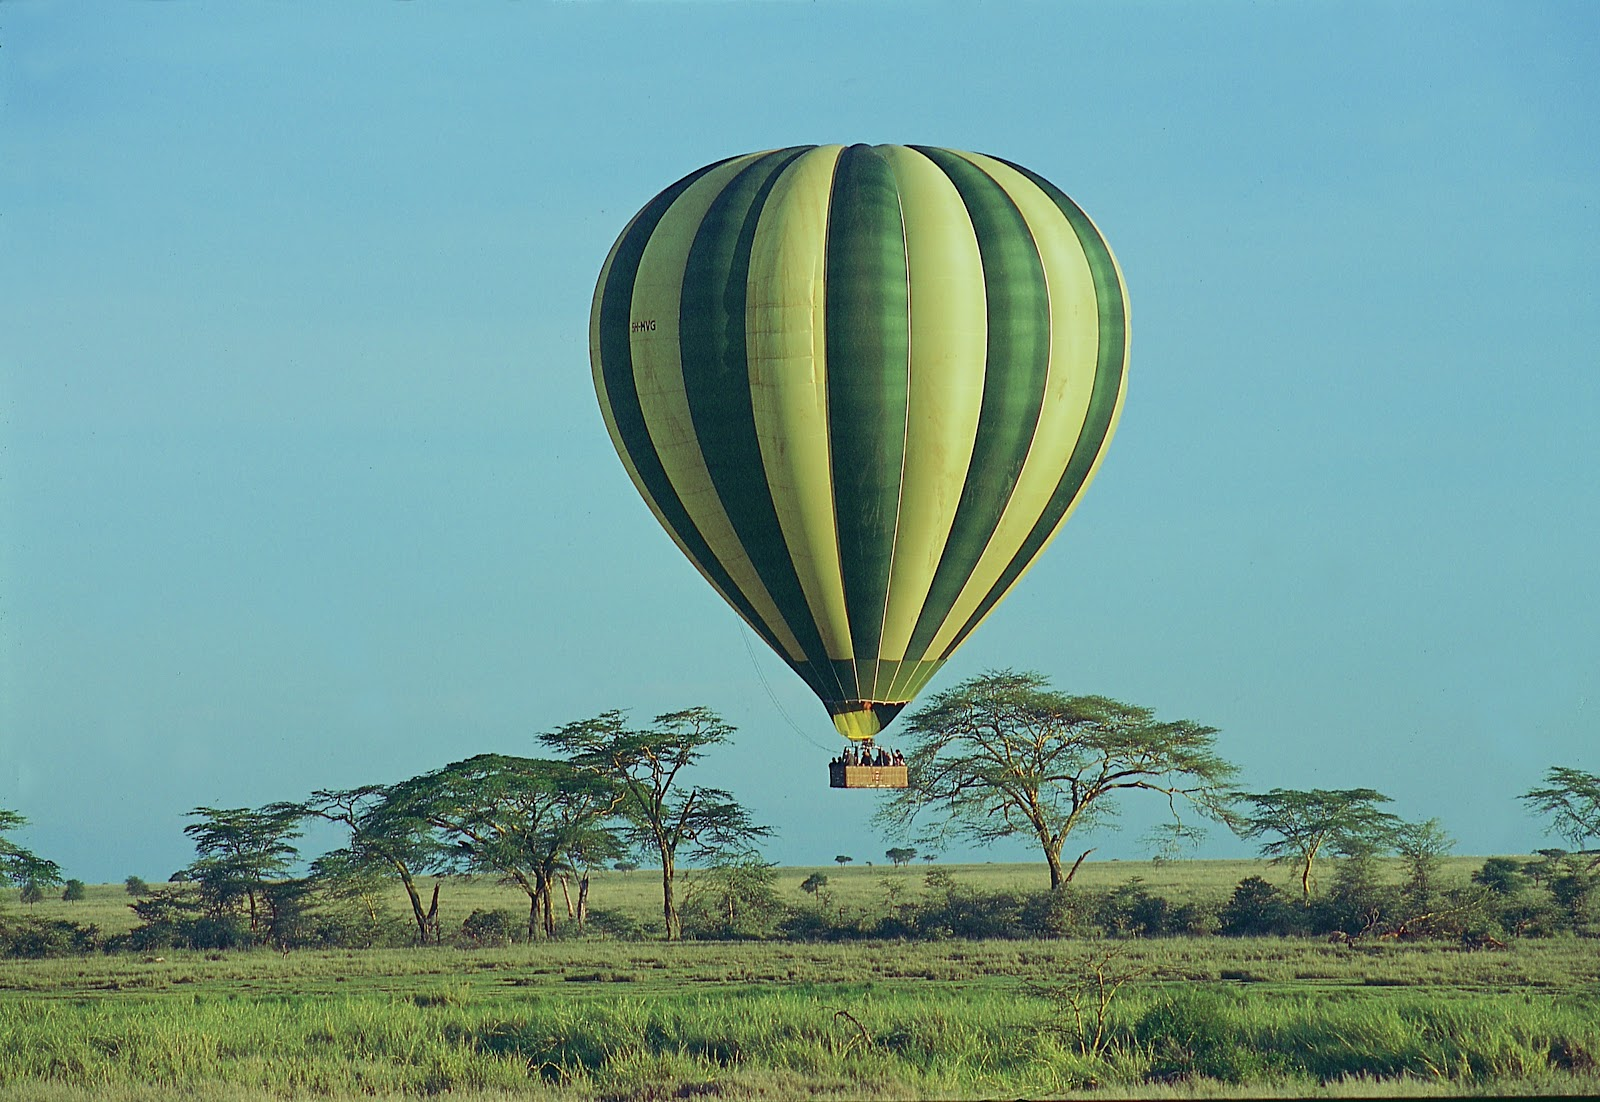 Enjoy a hot air balloon ride as you savor beautiful East Africa.